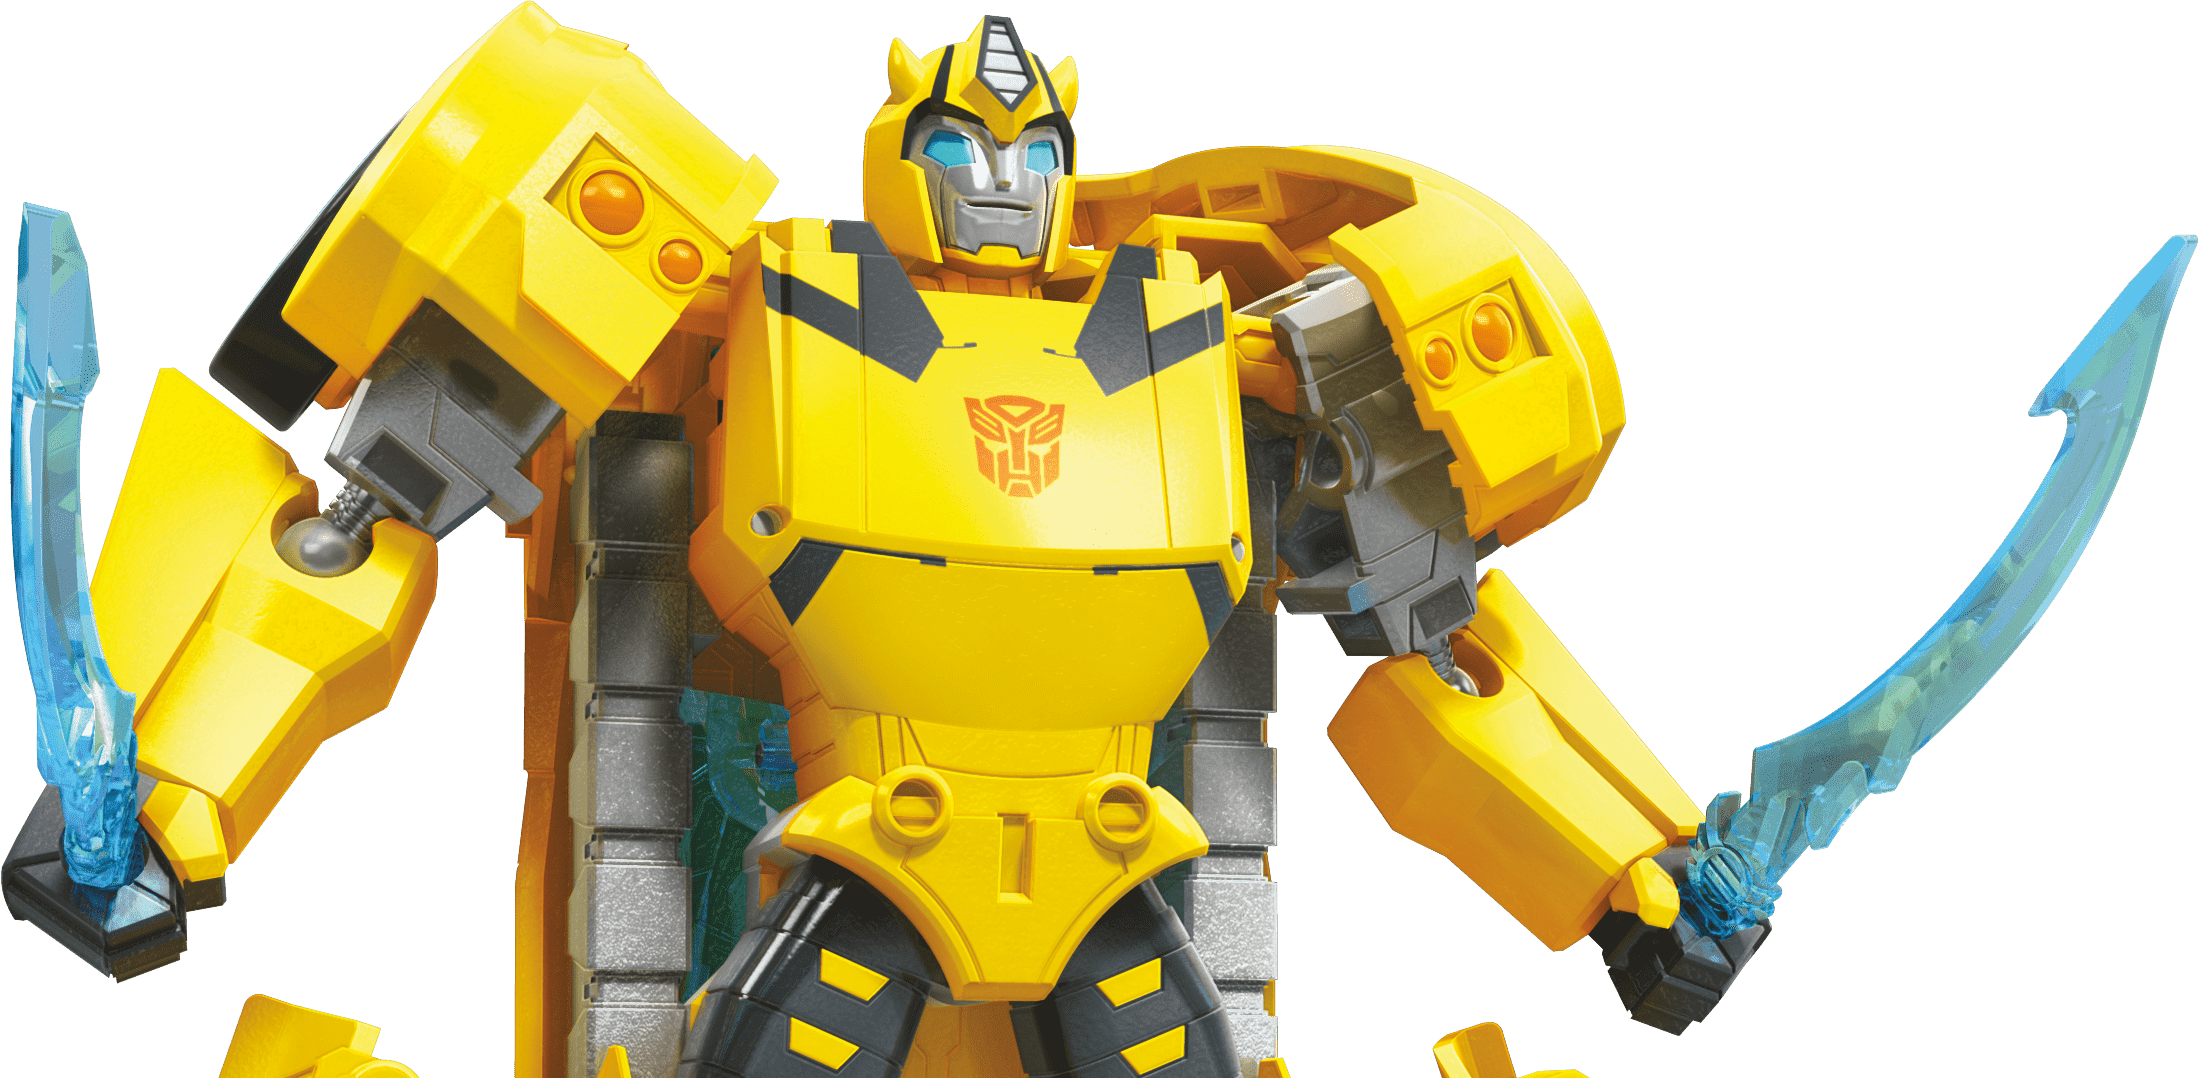 Hasbro Reveals Tranformers Products During London Comic Con 2019